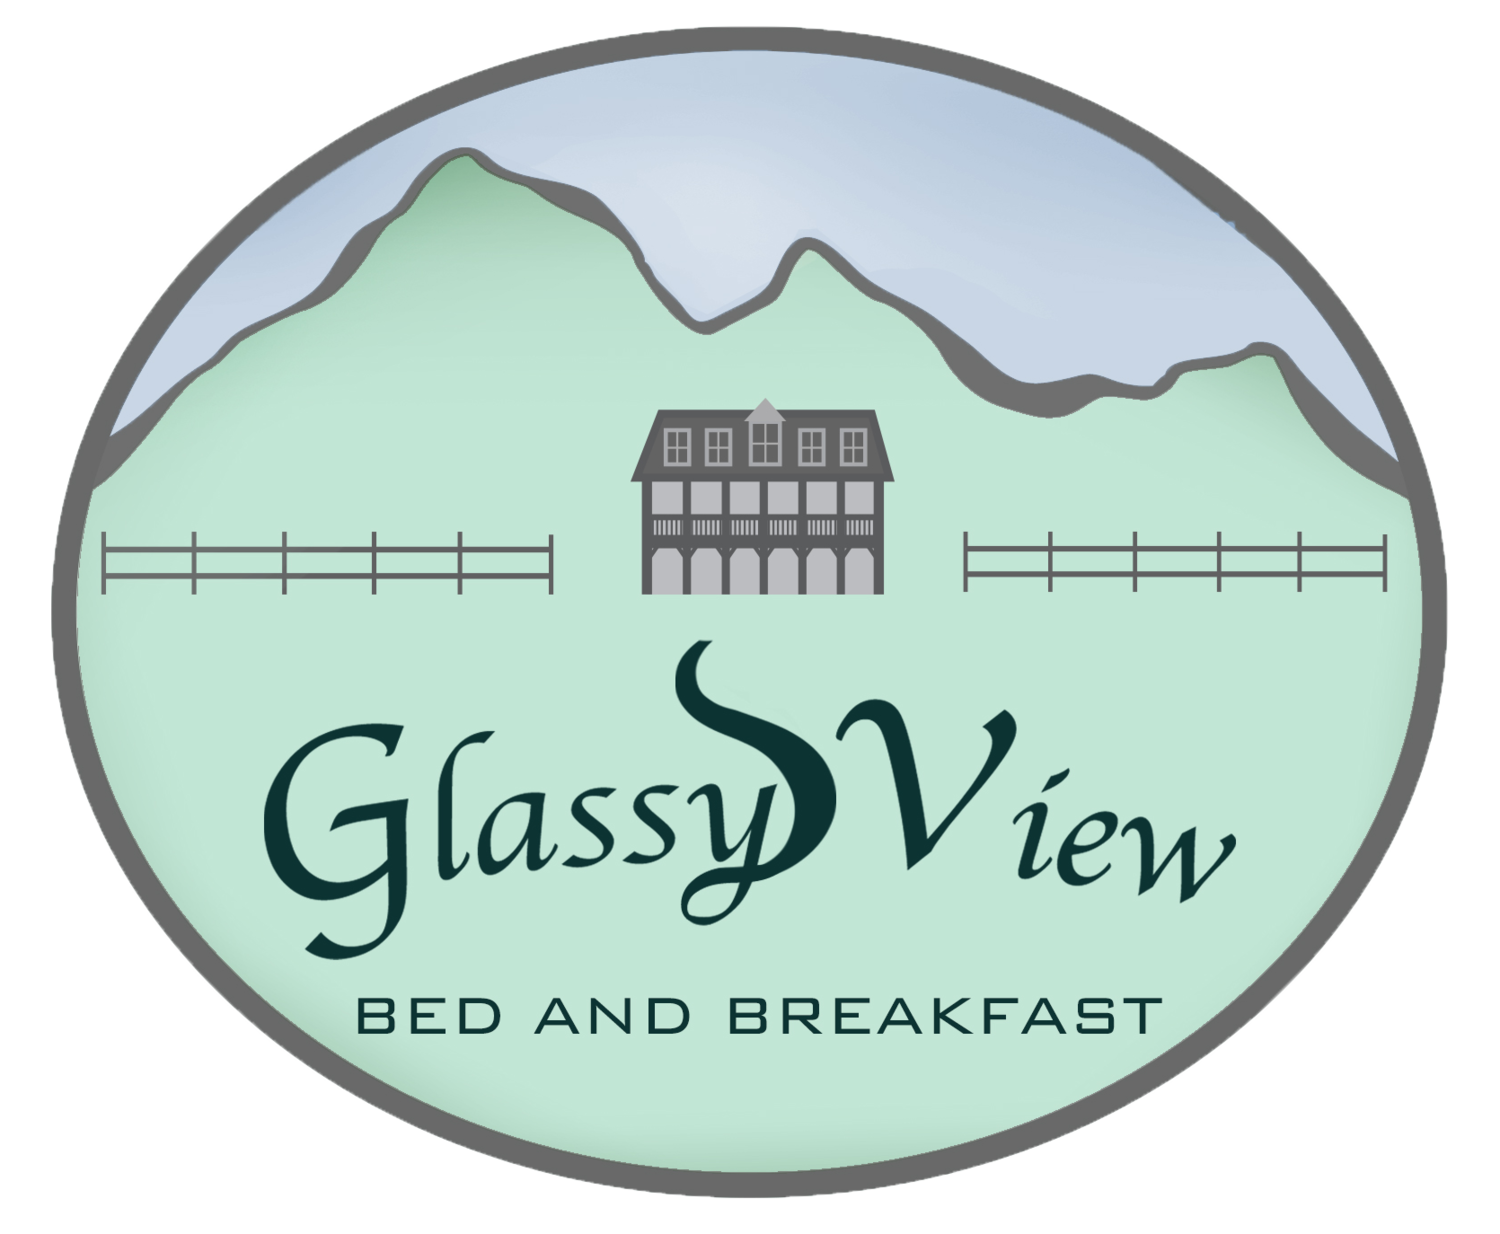 Glassy View Bed & Breakfast